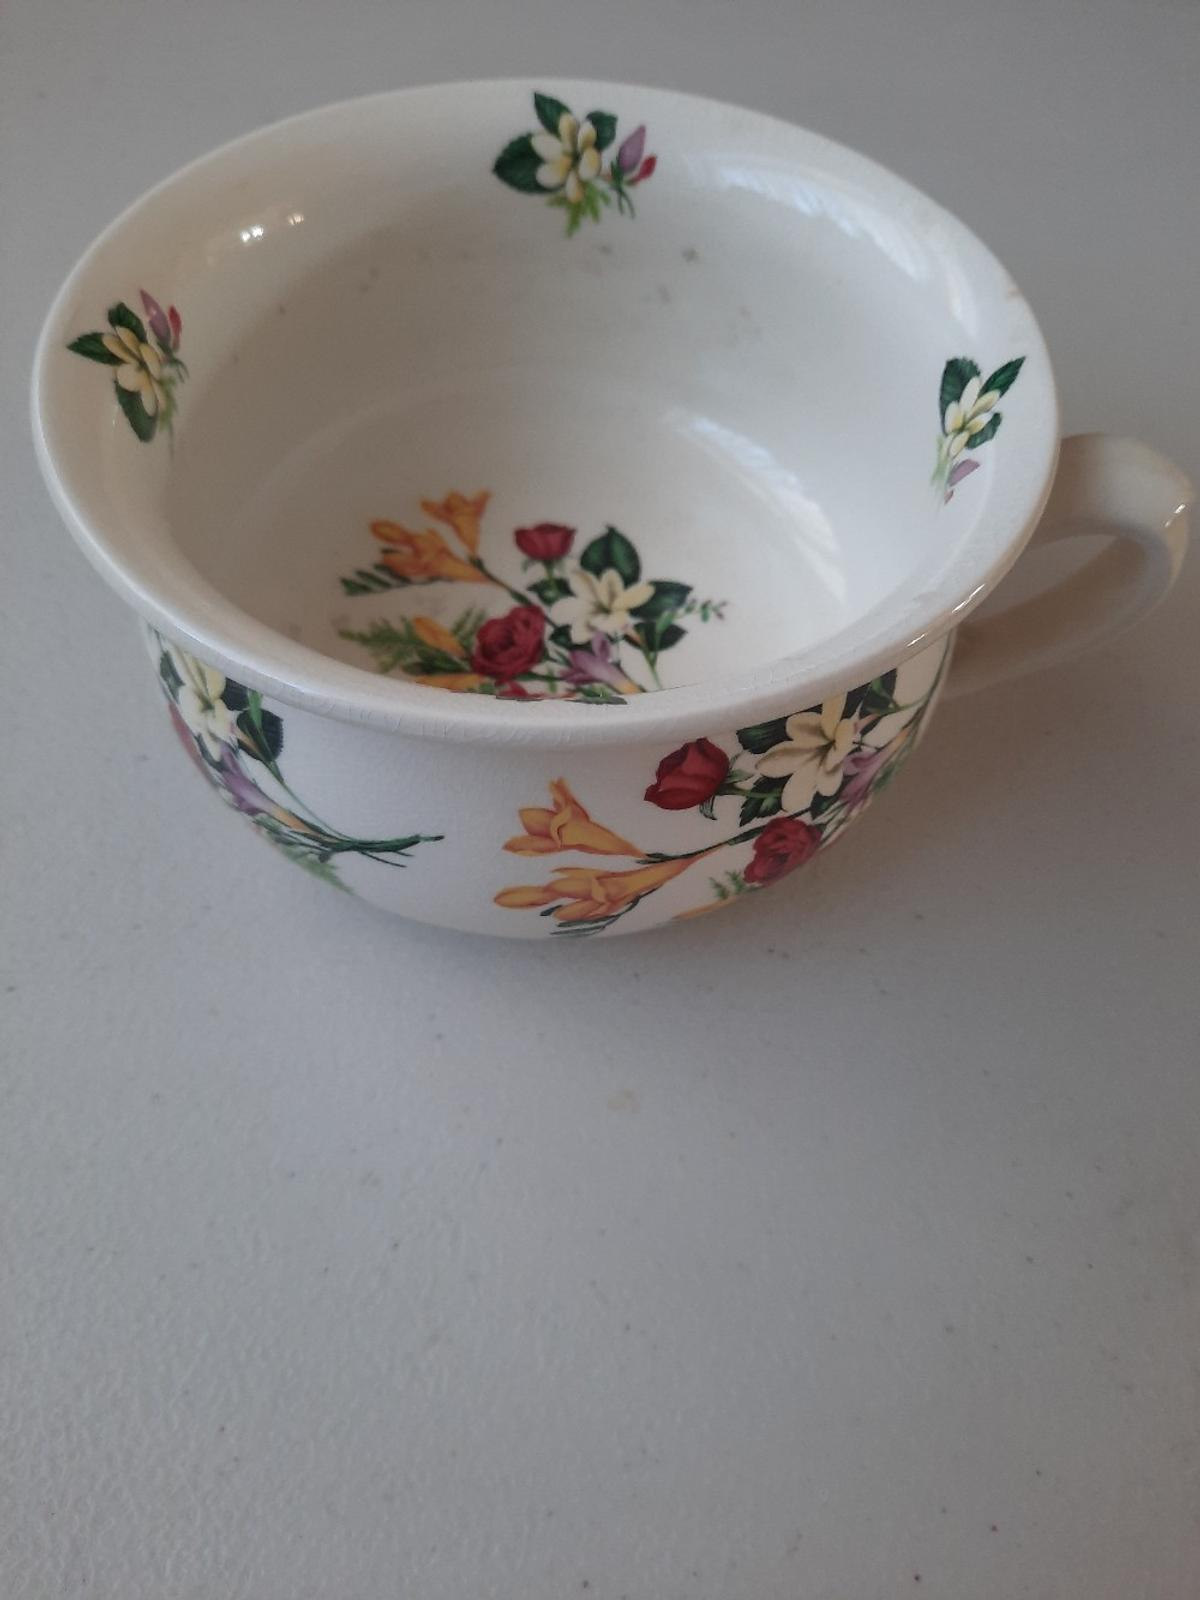 Chamber pot 25cm diameter. Slight crazing to glaze but overall in good condition